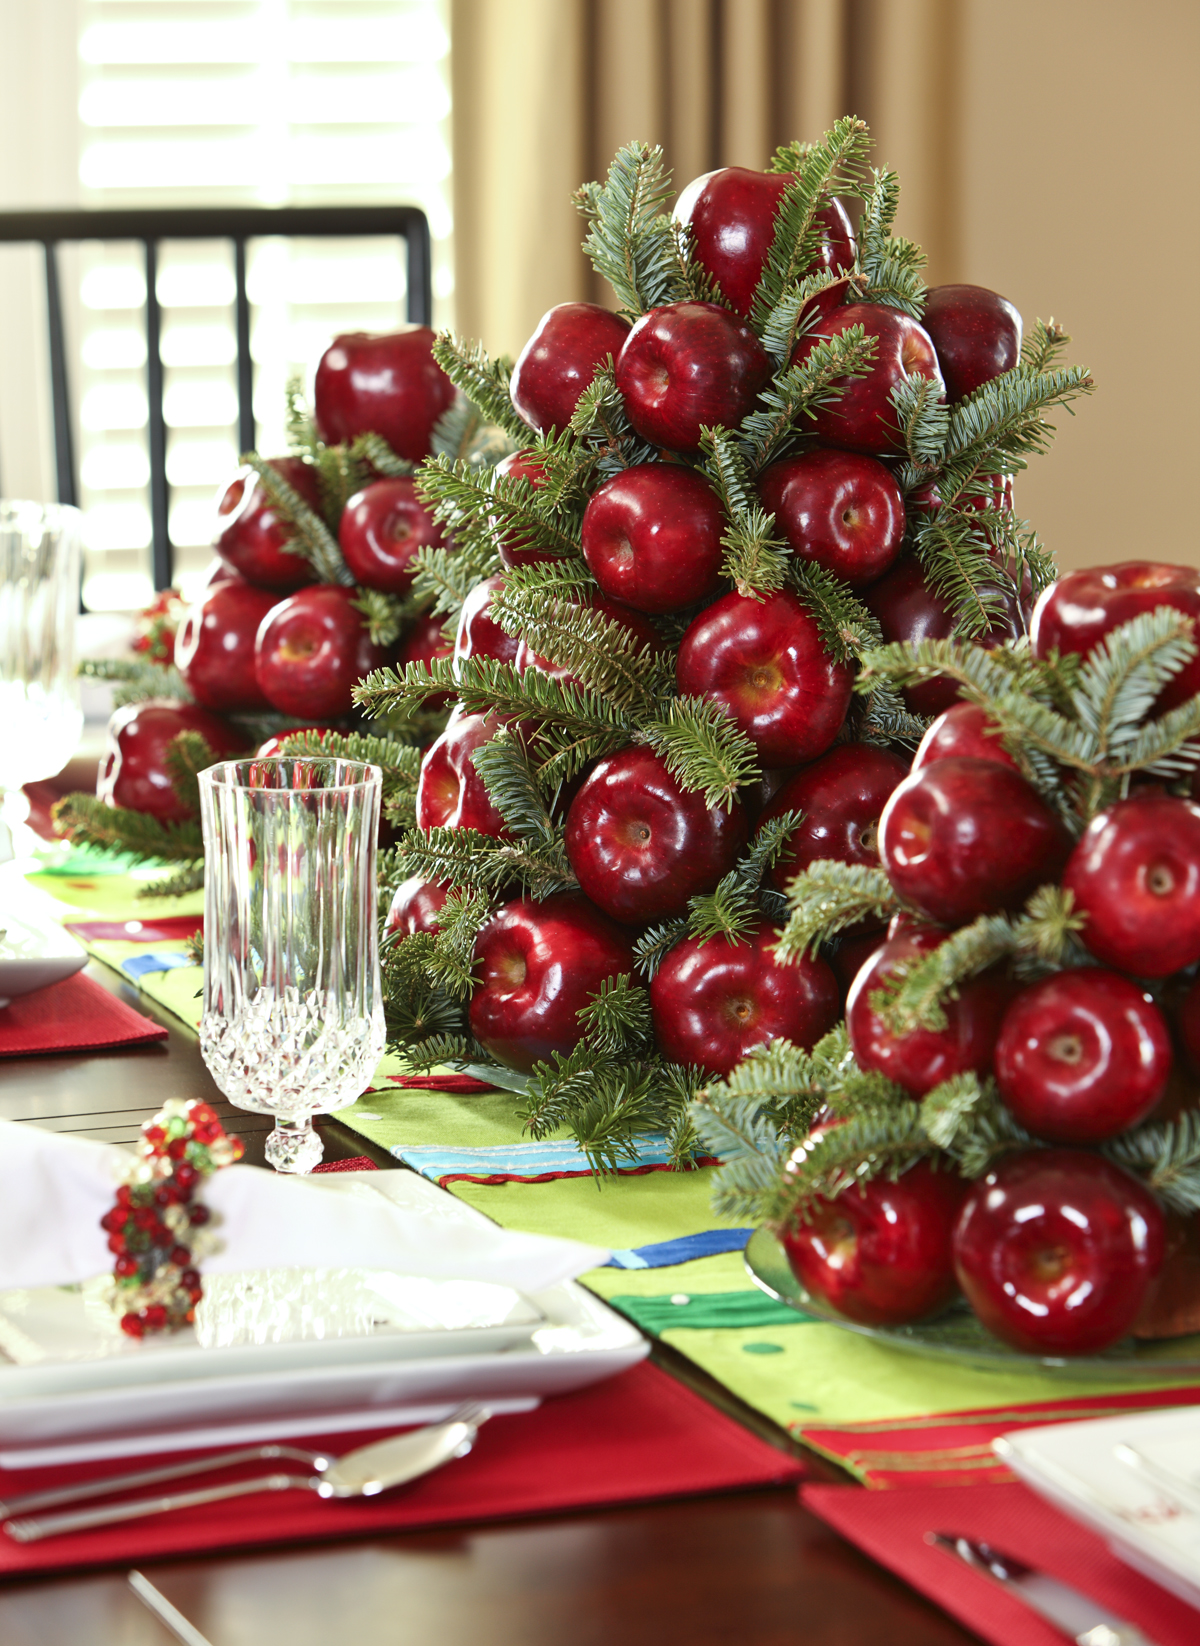 50 Best DIY Christmas Table Decoration Ideas for 2020